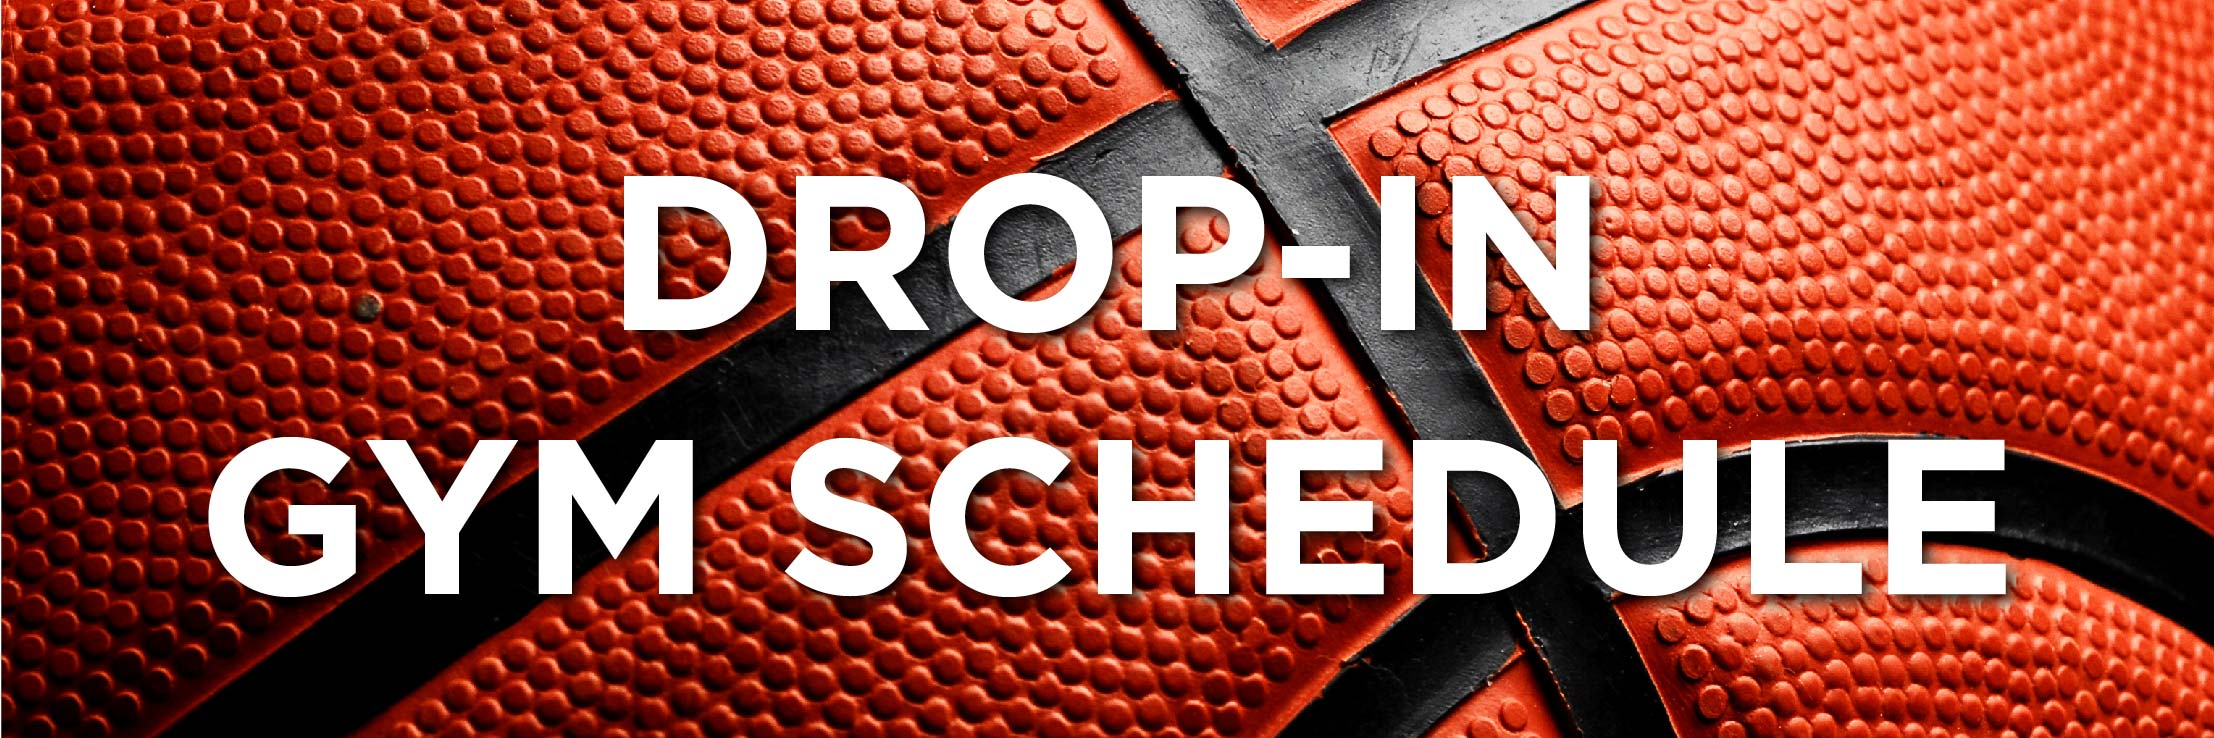 Drop In Gym Schedule Web Strip-03